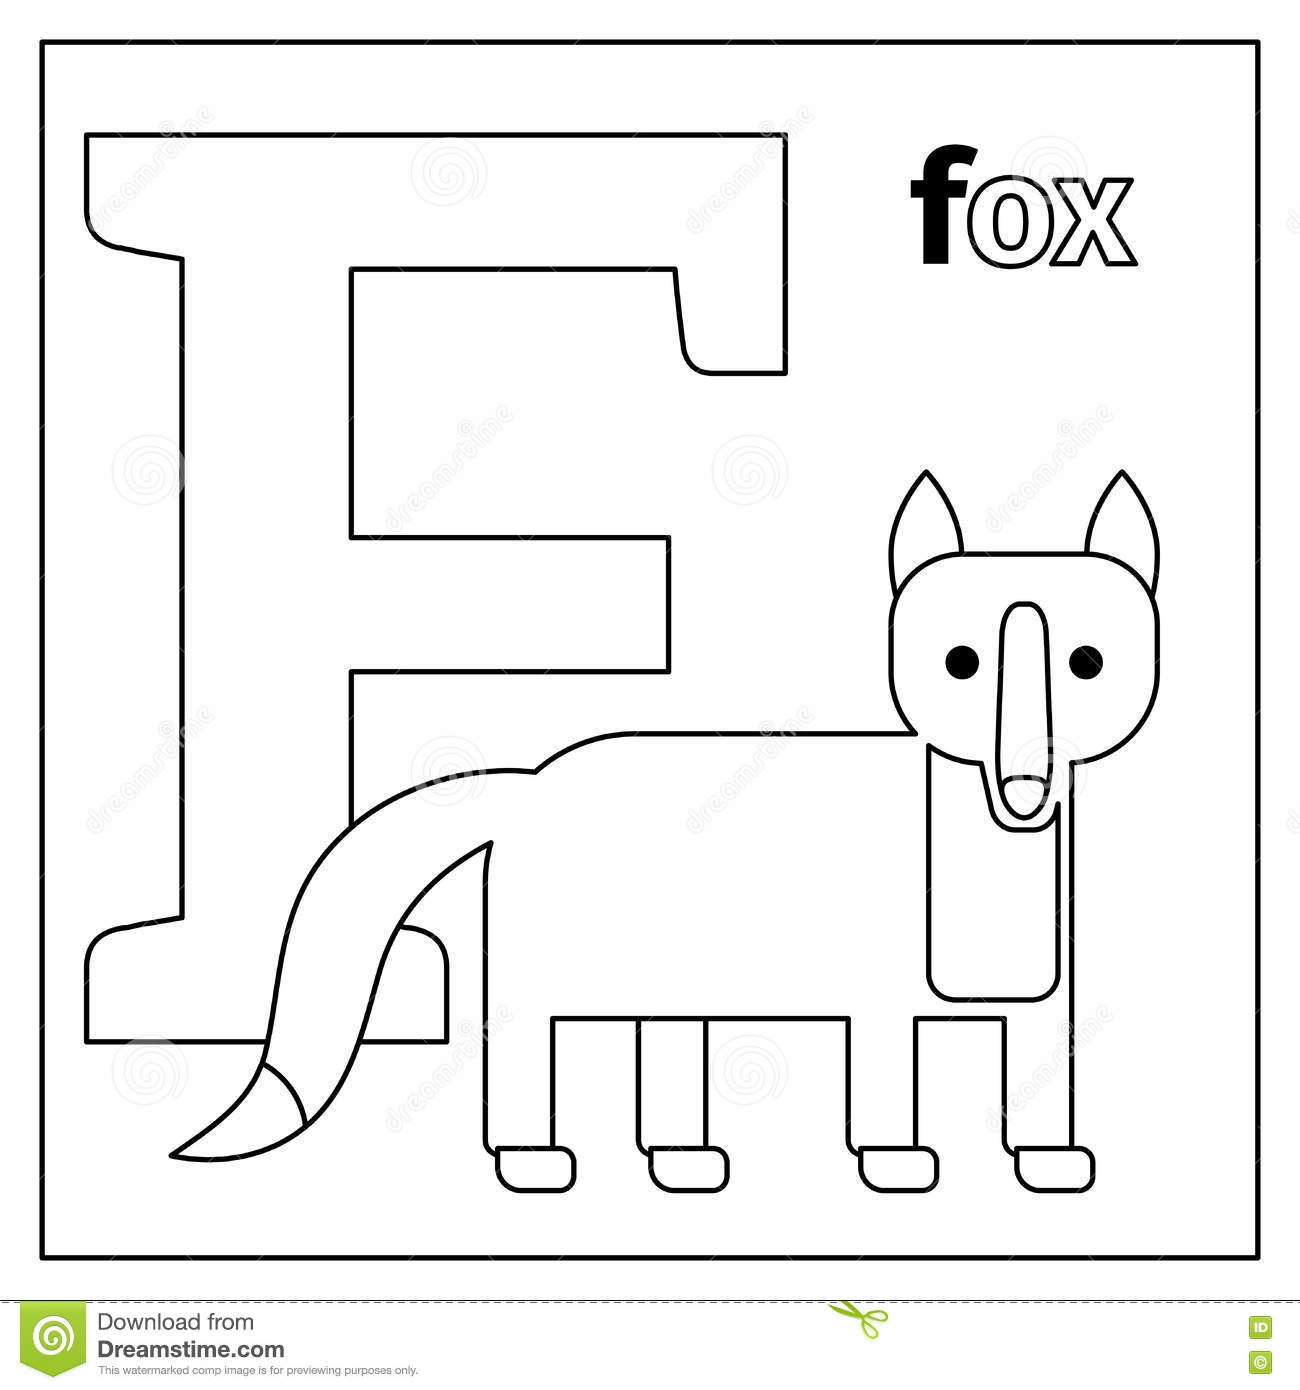 f is for fox coloring page top 10 free printable letter f coloring pages online fox for f coloring is page